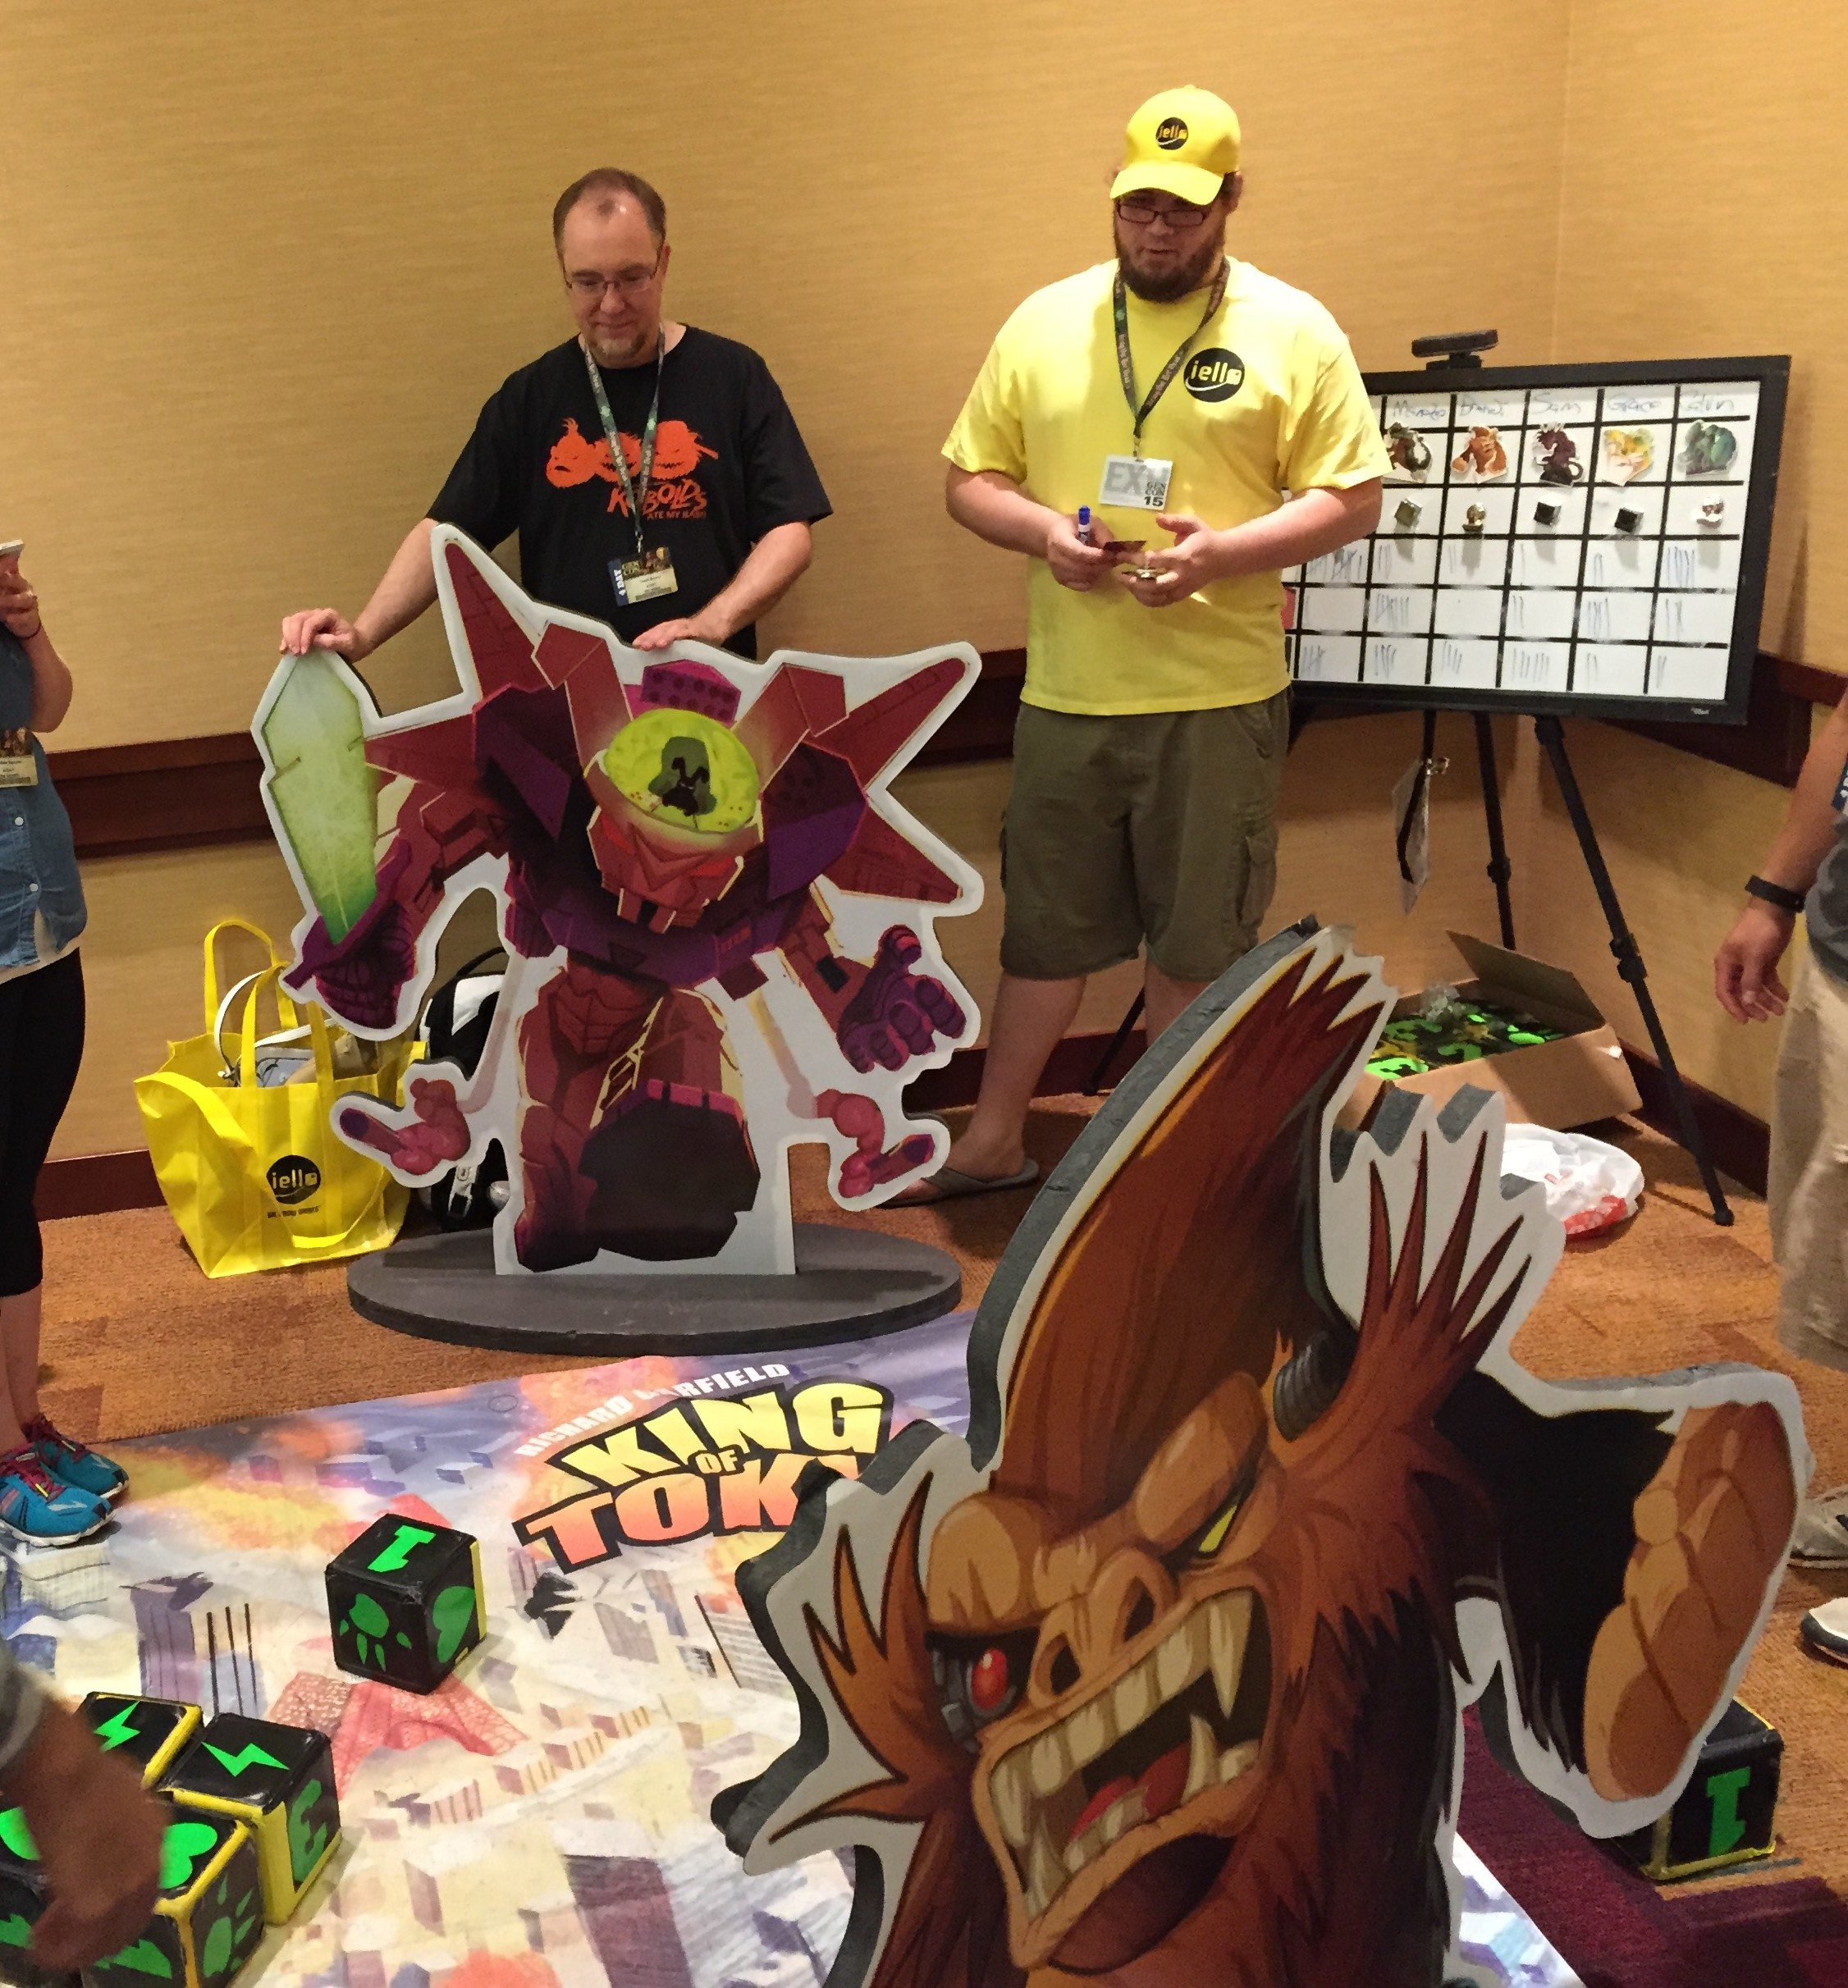 Gamers playing the Giant edition of King of Tokyo